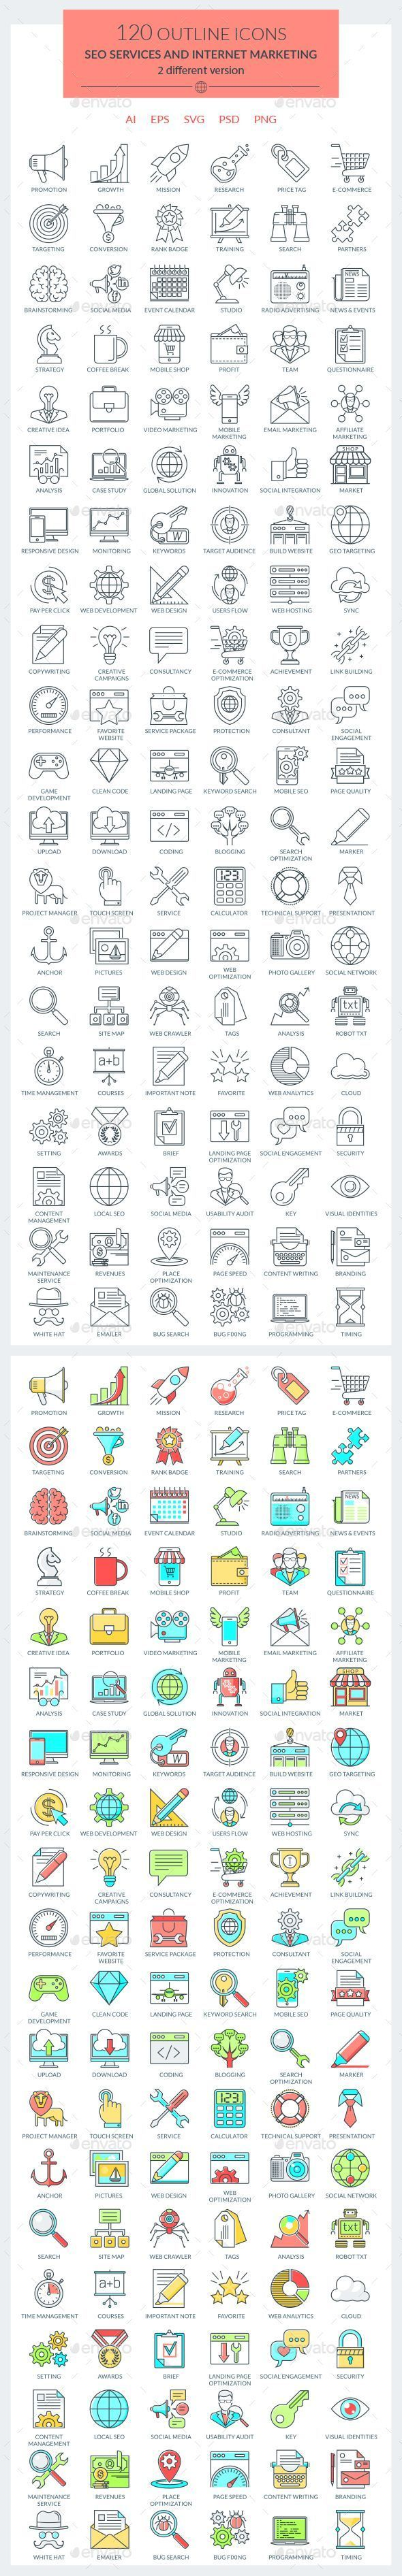 Best 25 internet icon ideas on pinterest business icon flat seo services and internet marketing icons ecommerce engine icon available here biocorpaavc